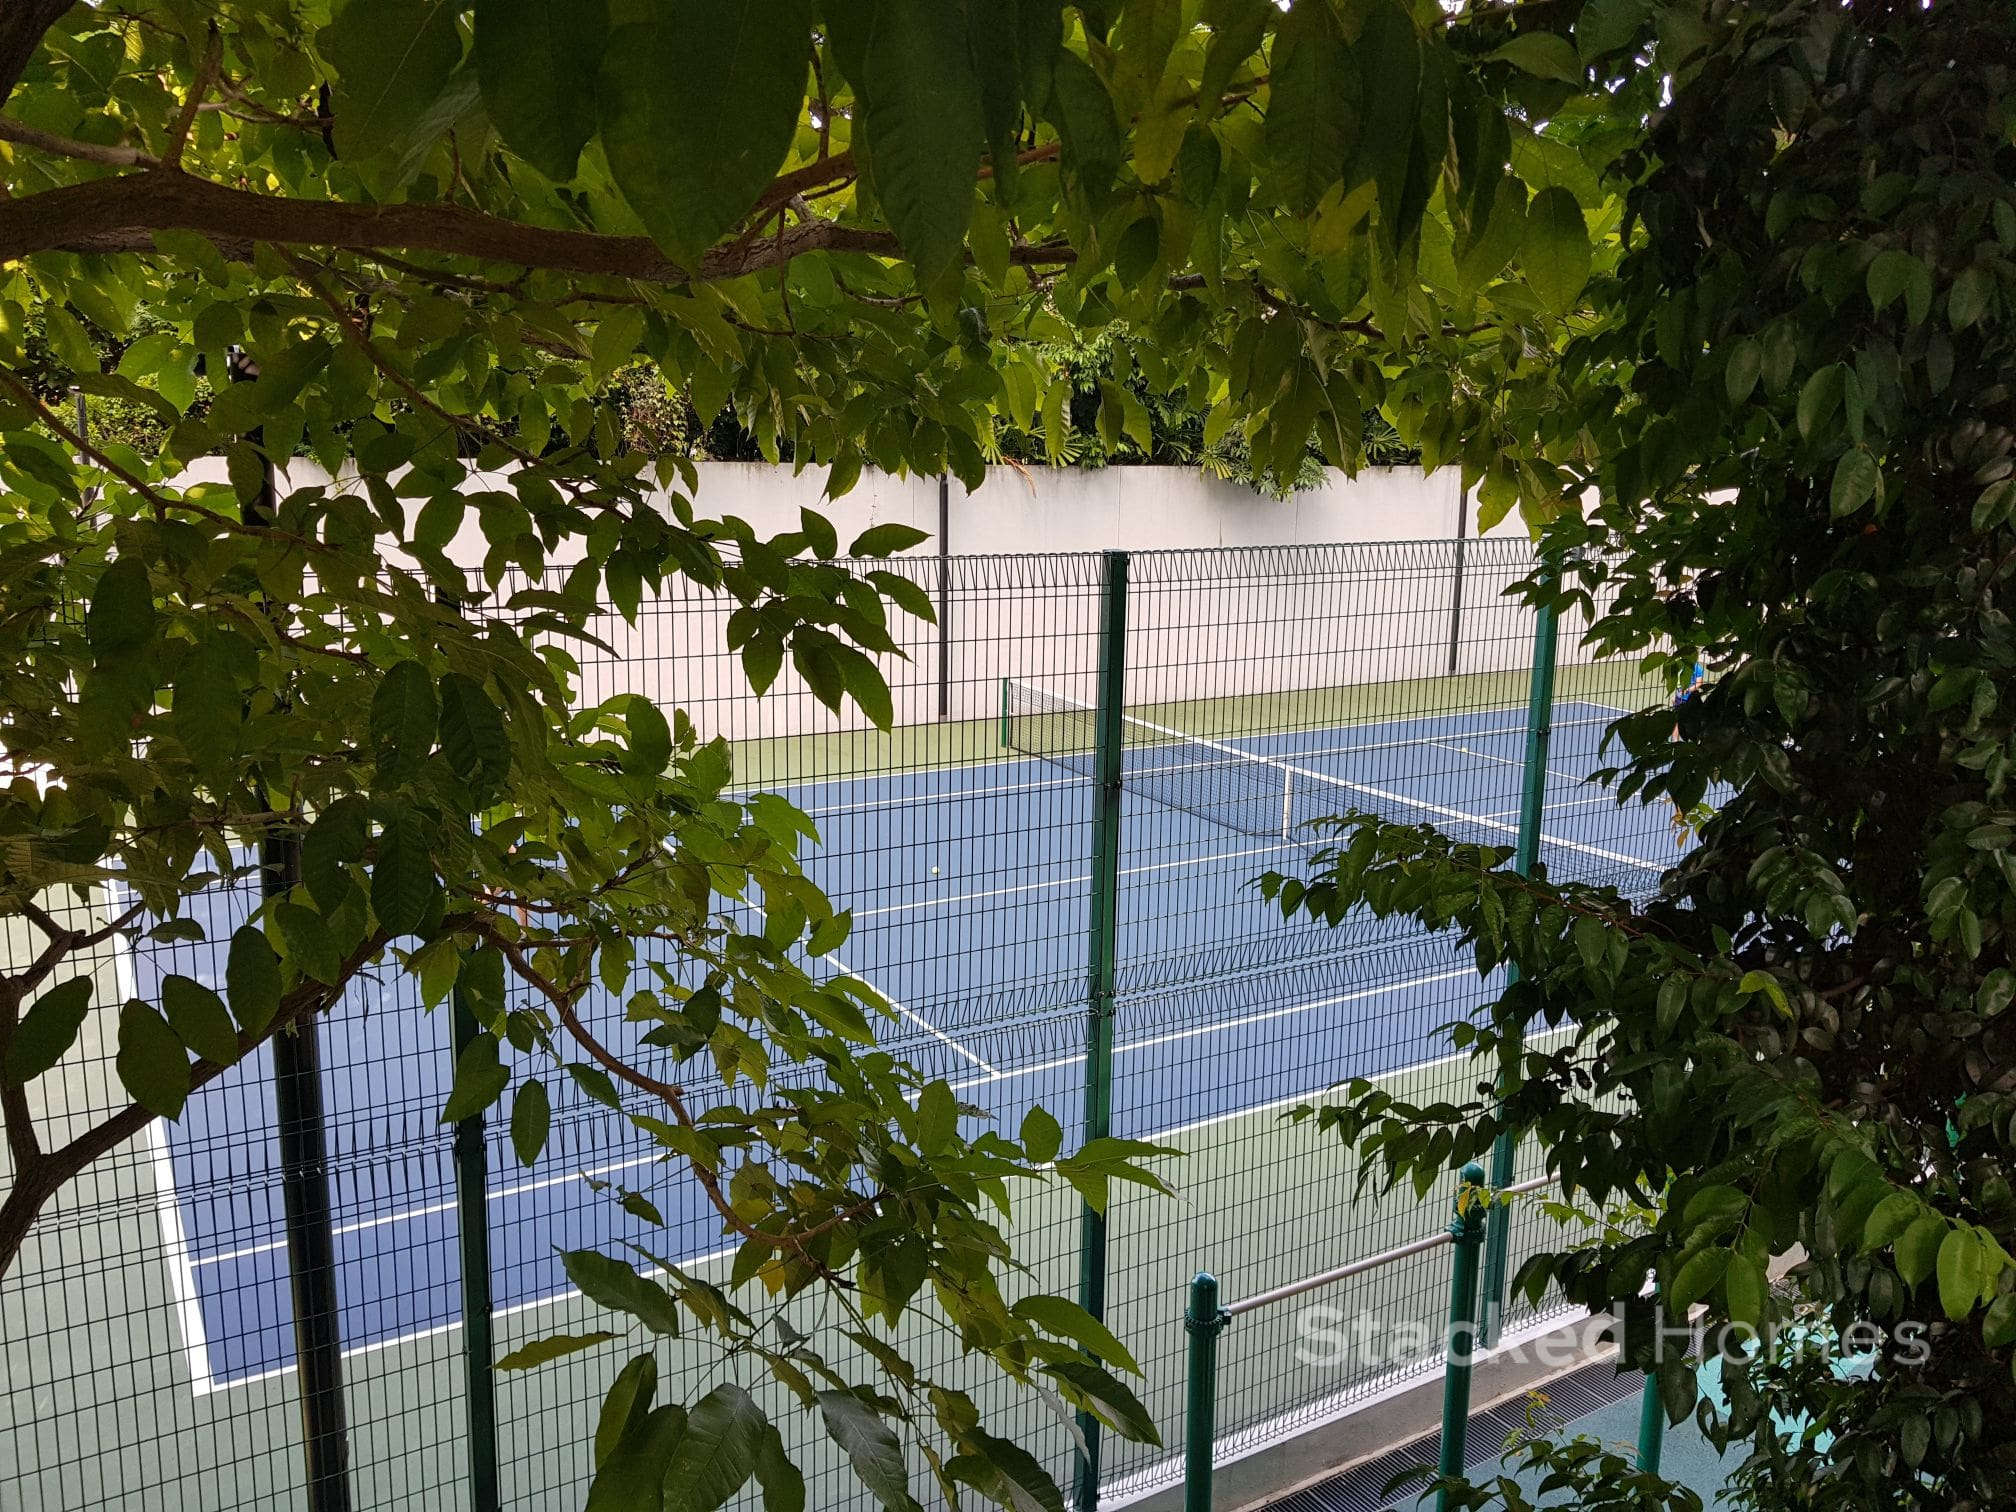 interlace condo tennis courts